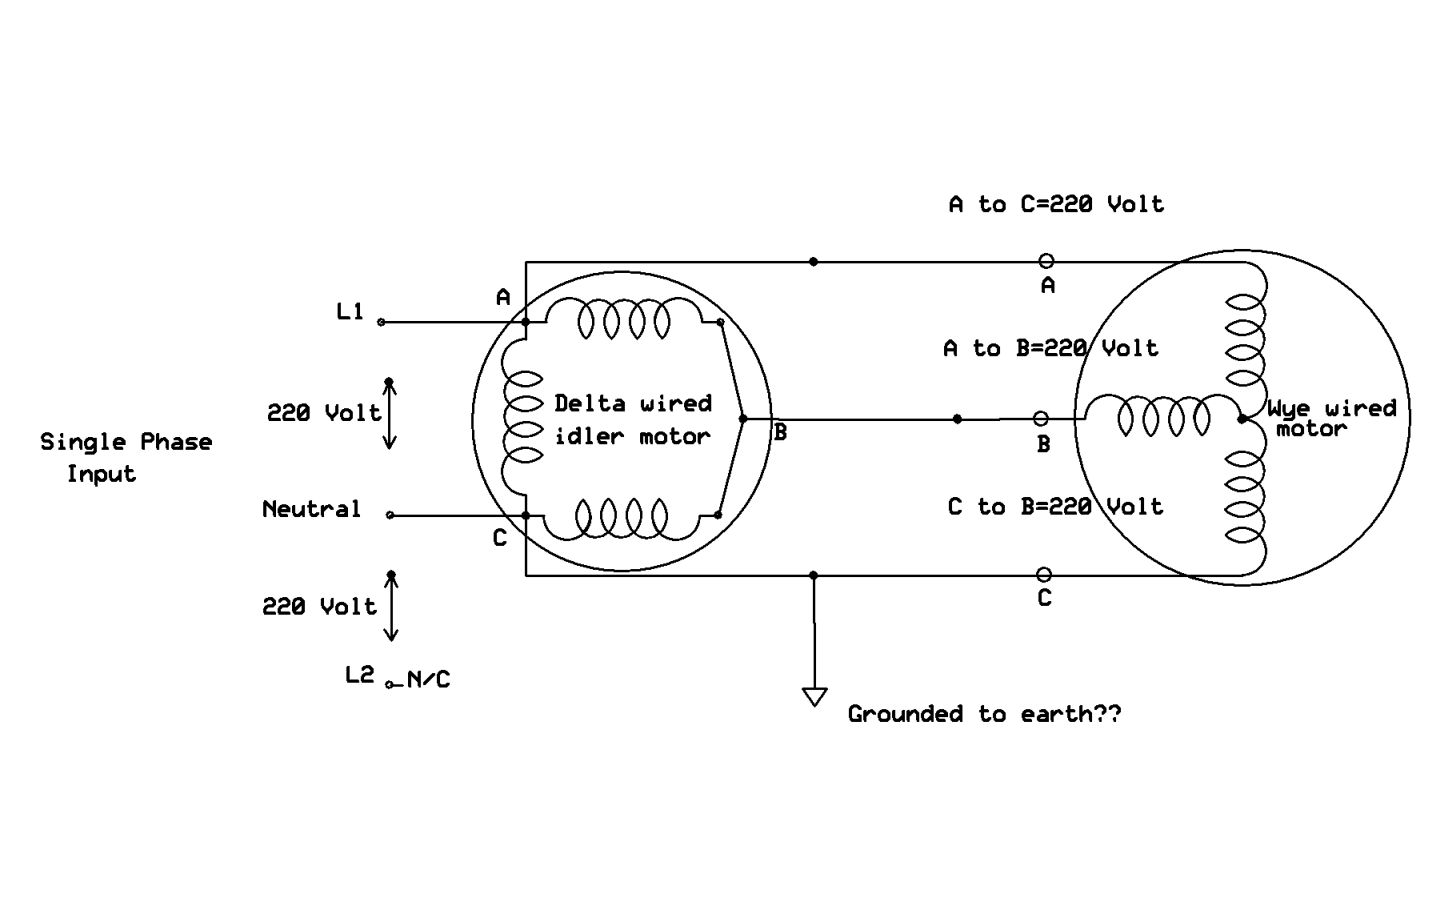 3 phase motor wiring diagram star delta blank animal cell to label wye schematic get free image about